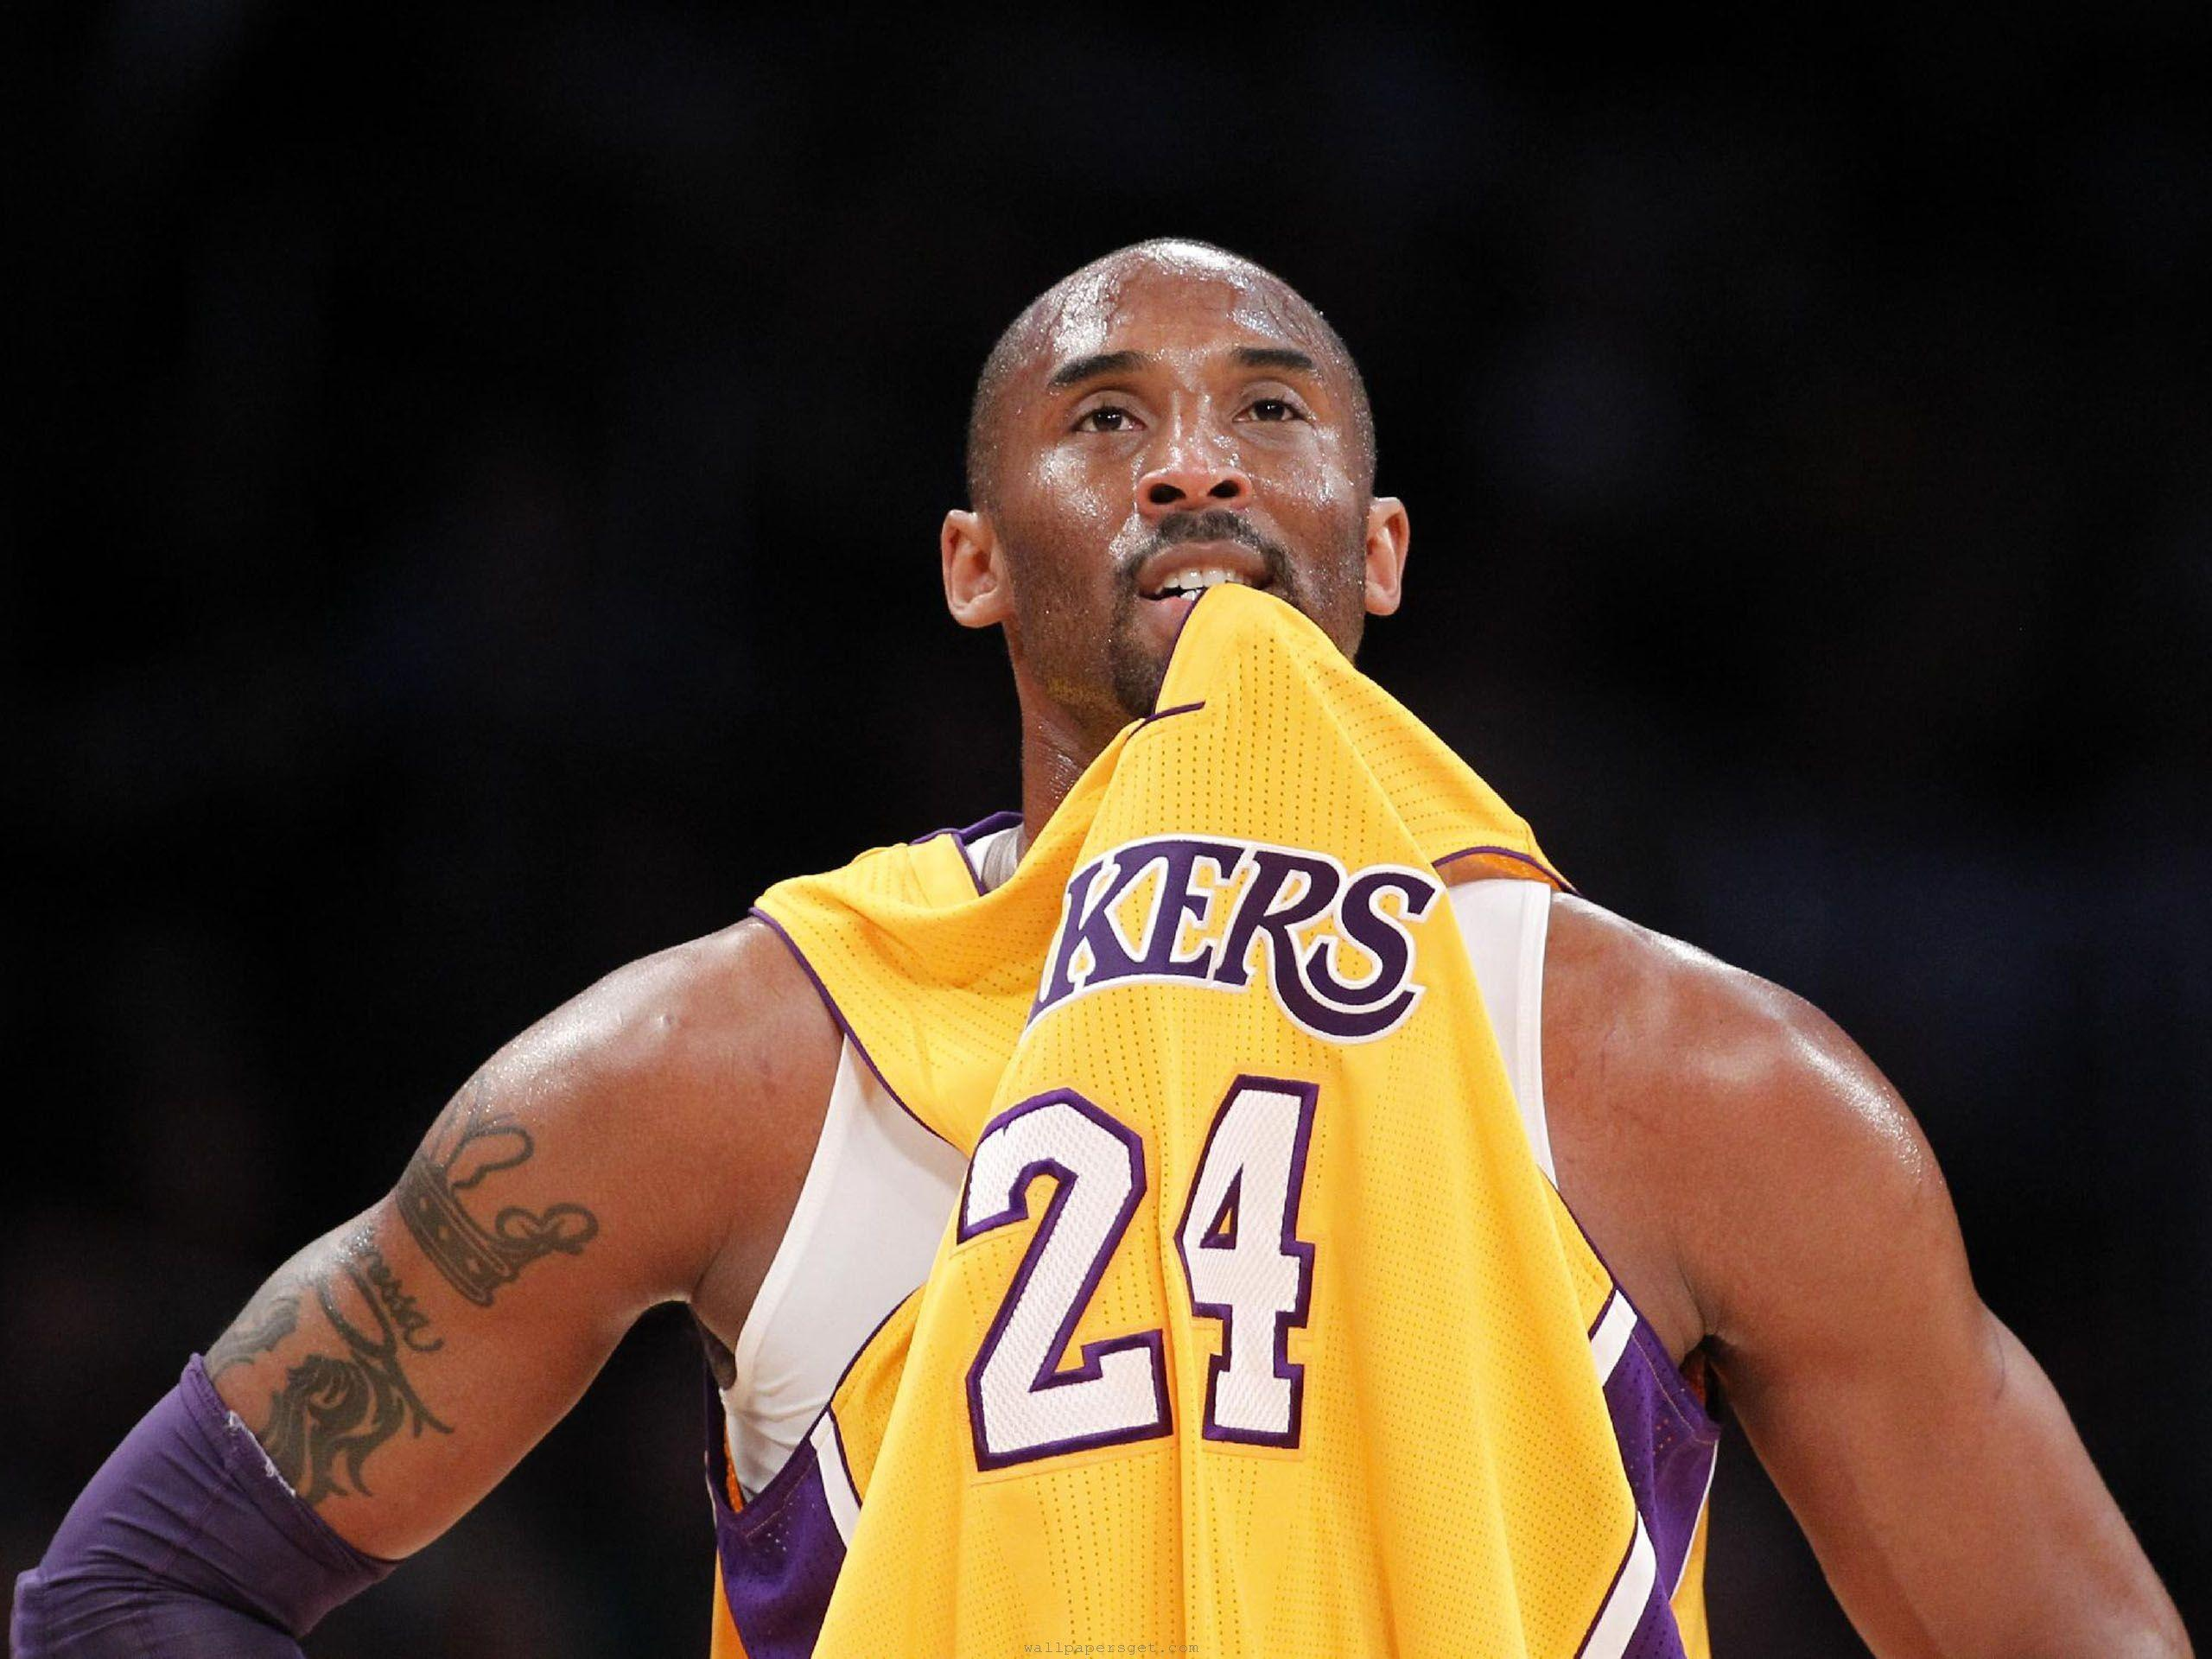 Kobe Bryant Wallpapers hd wallpapers ›› Page 0